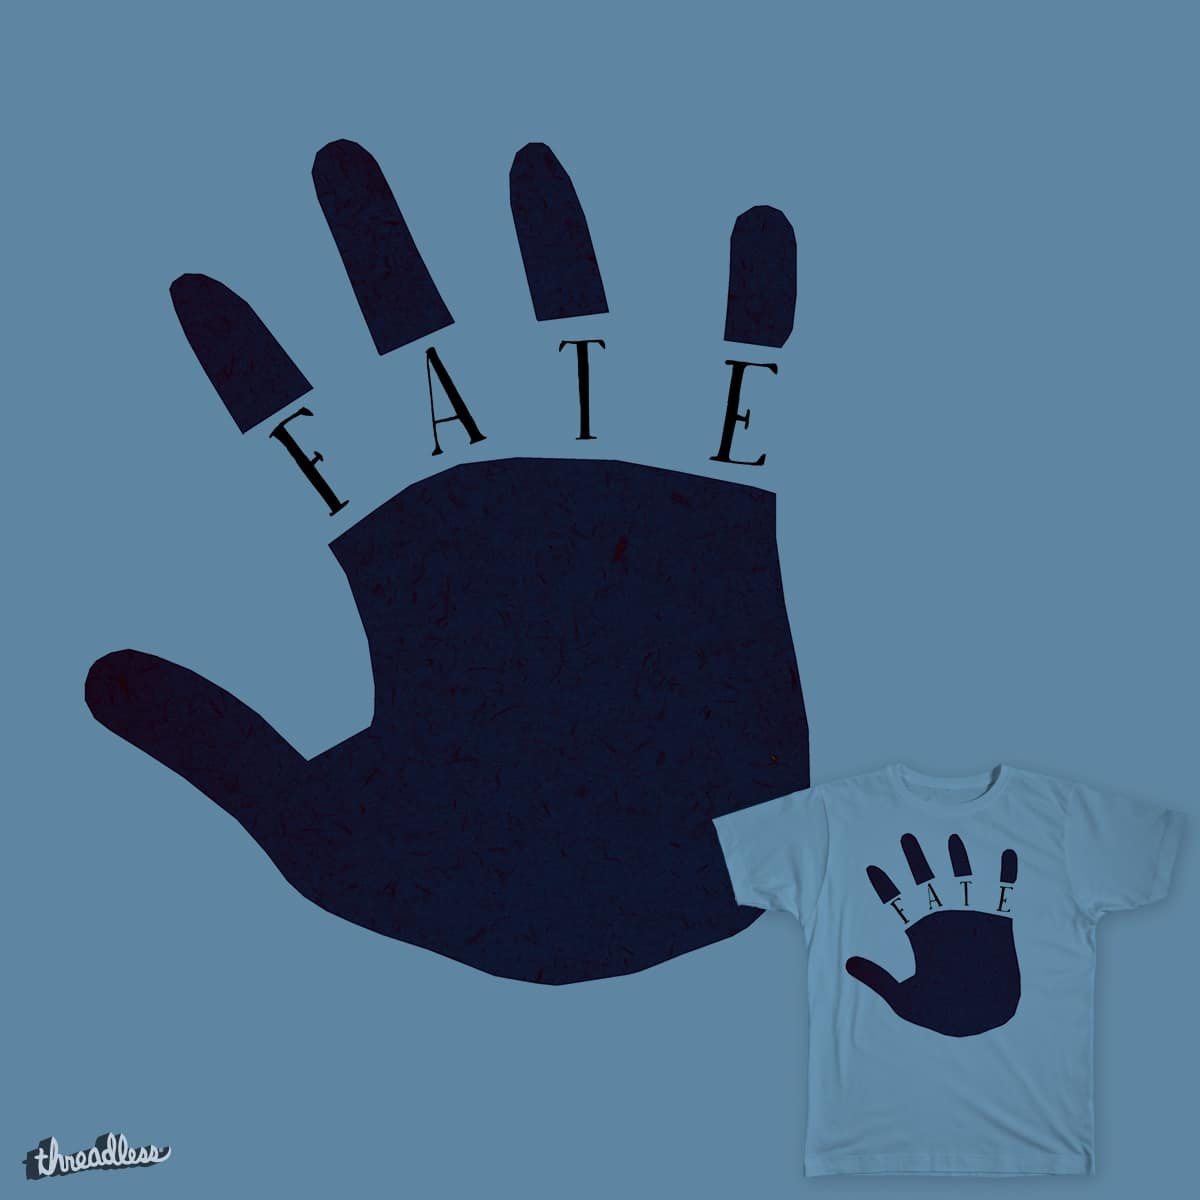 FATE by Craftyy on Threadless